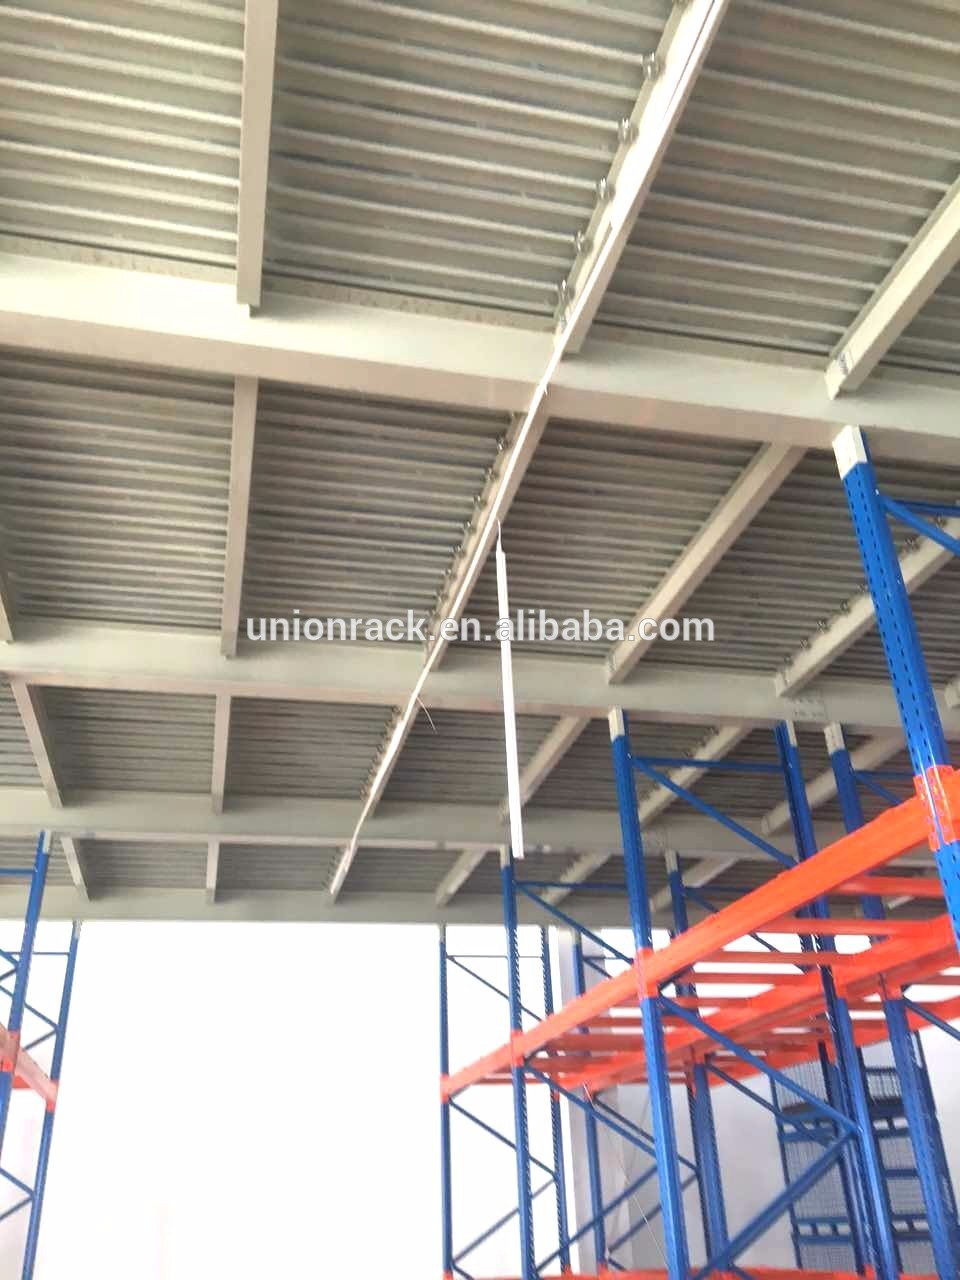 Save space storage steel mezzanine floor racking